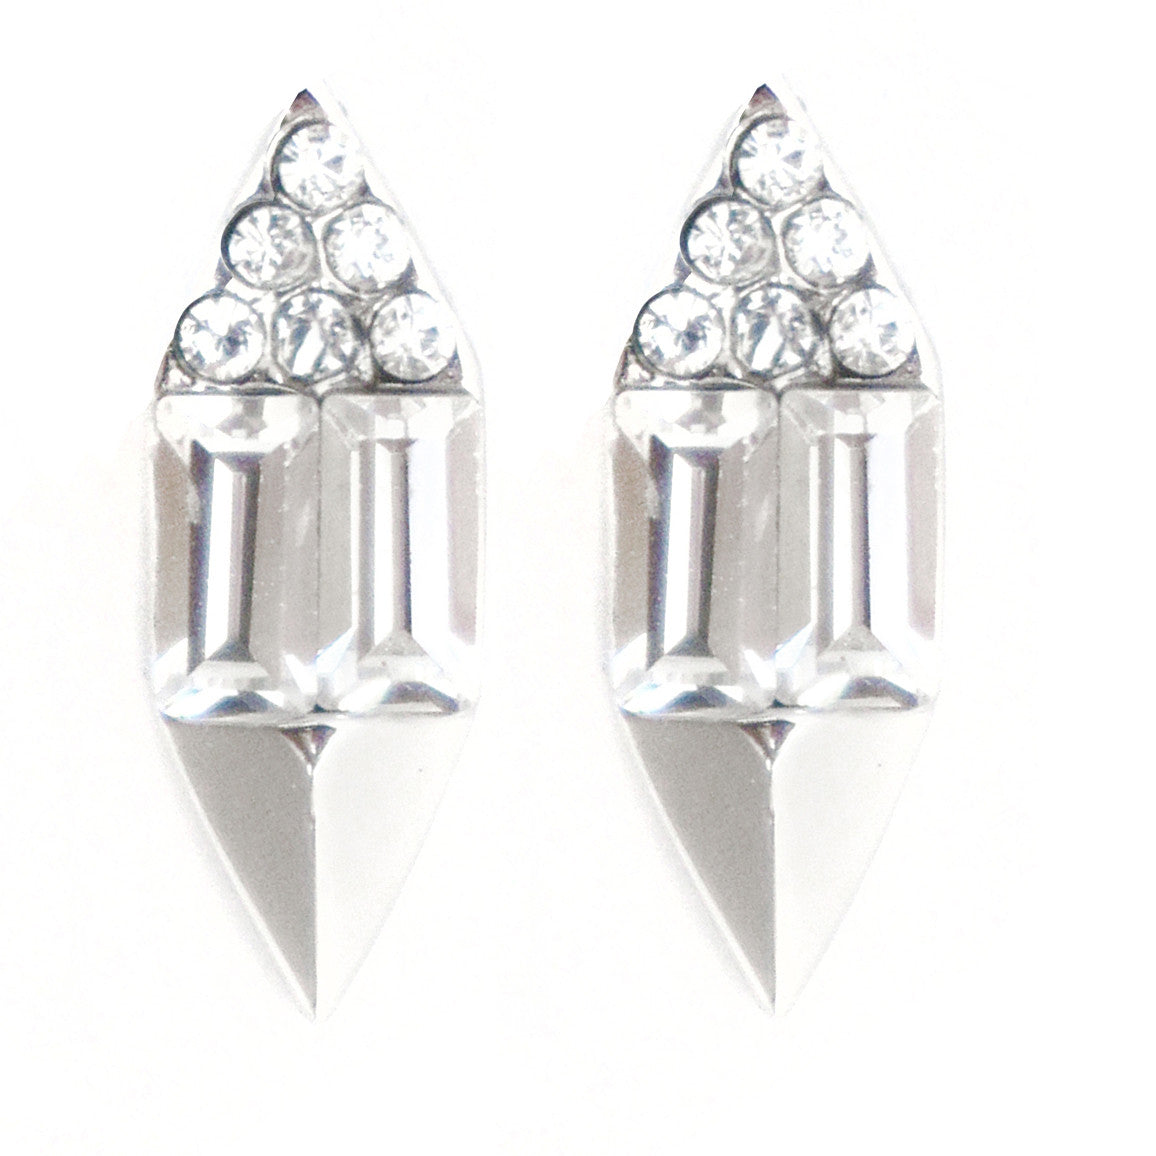 CAROLYN COLBY - SILVER SUNLIGHT STUD EARRINGS